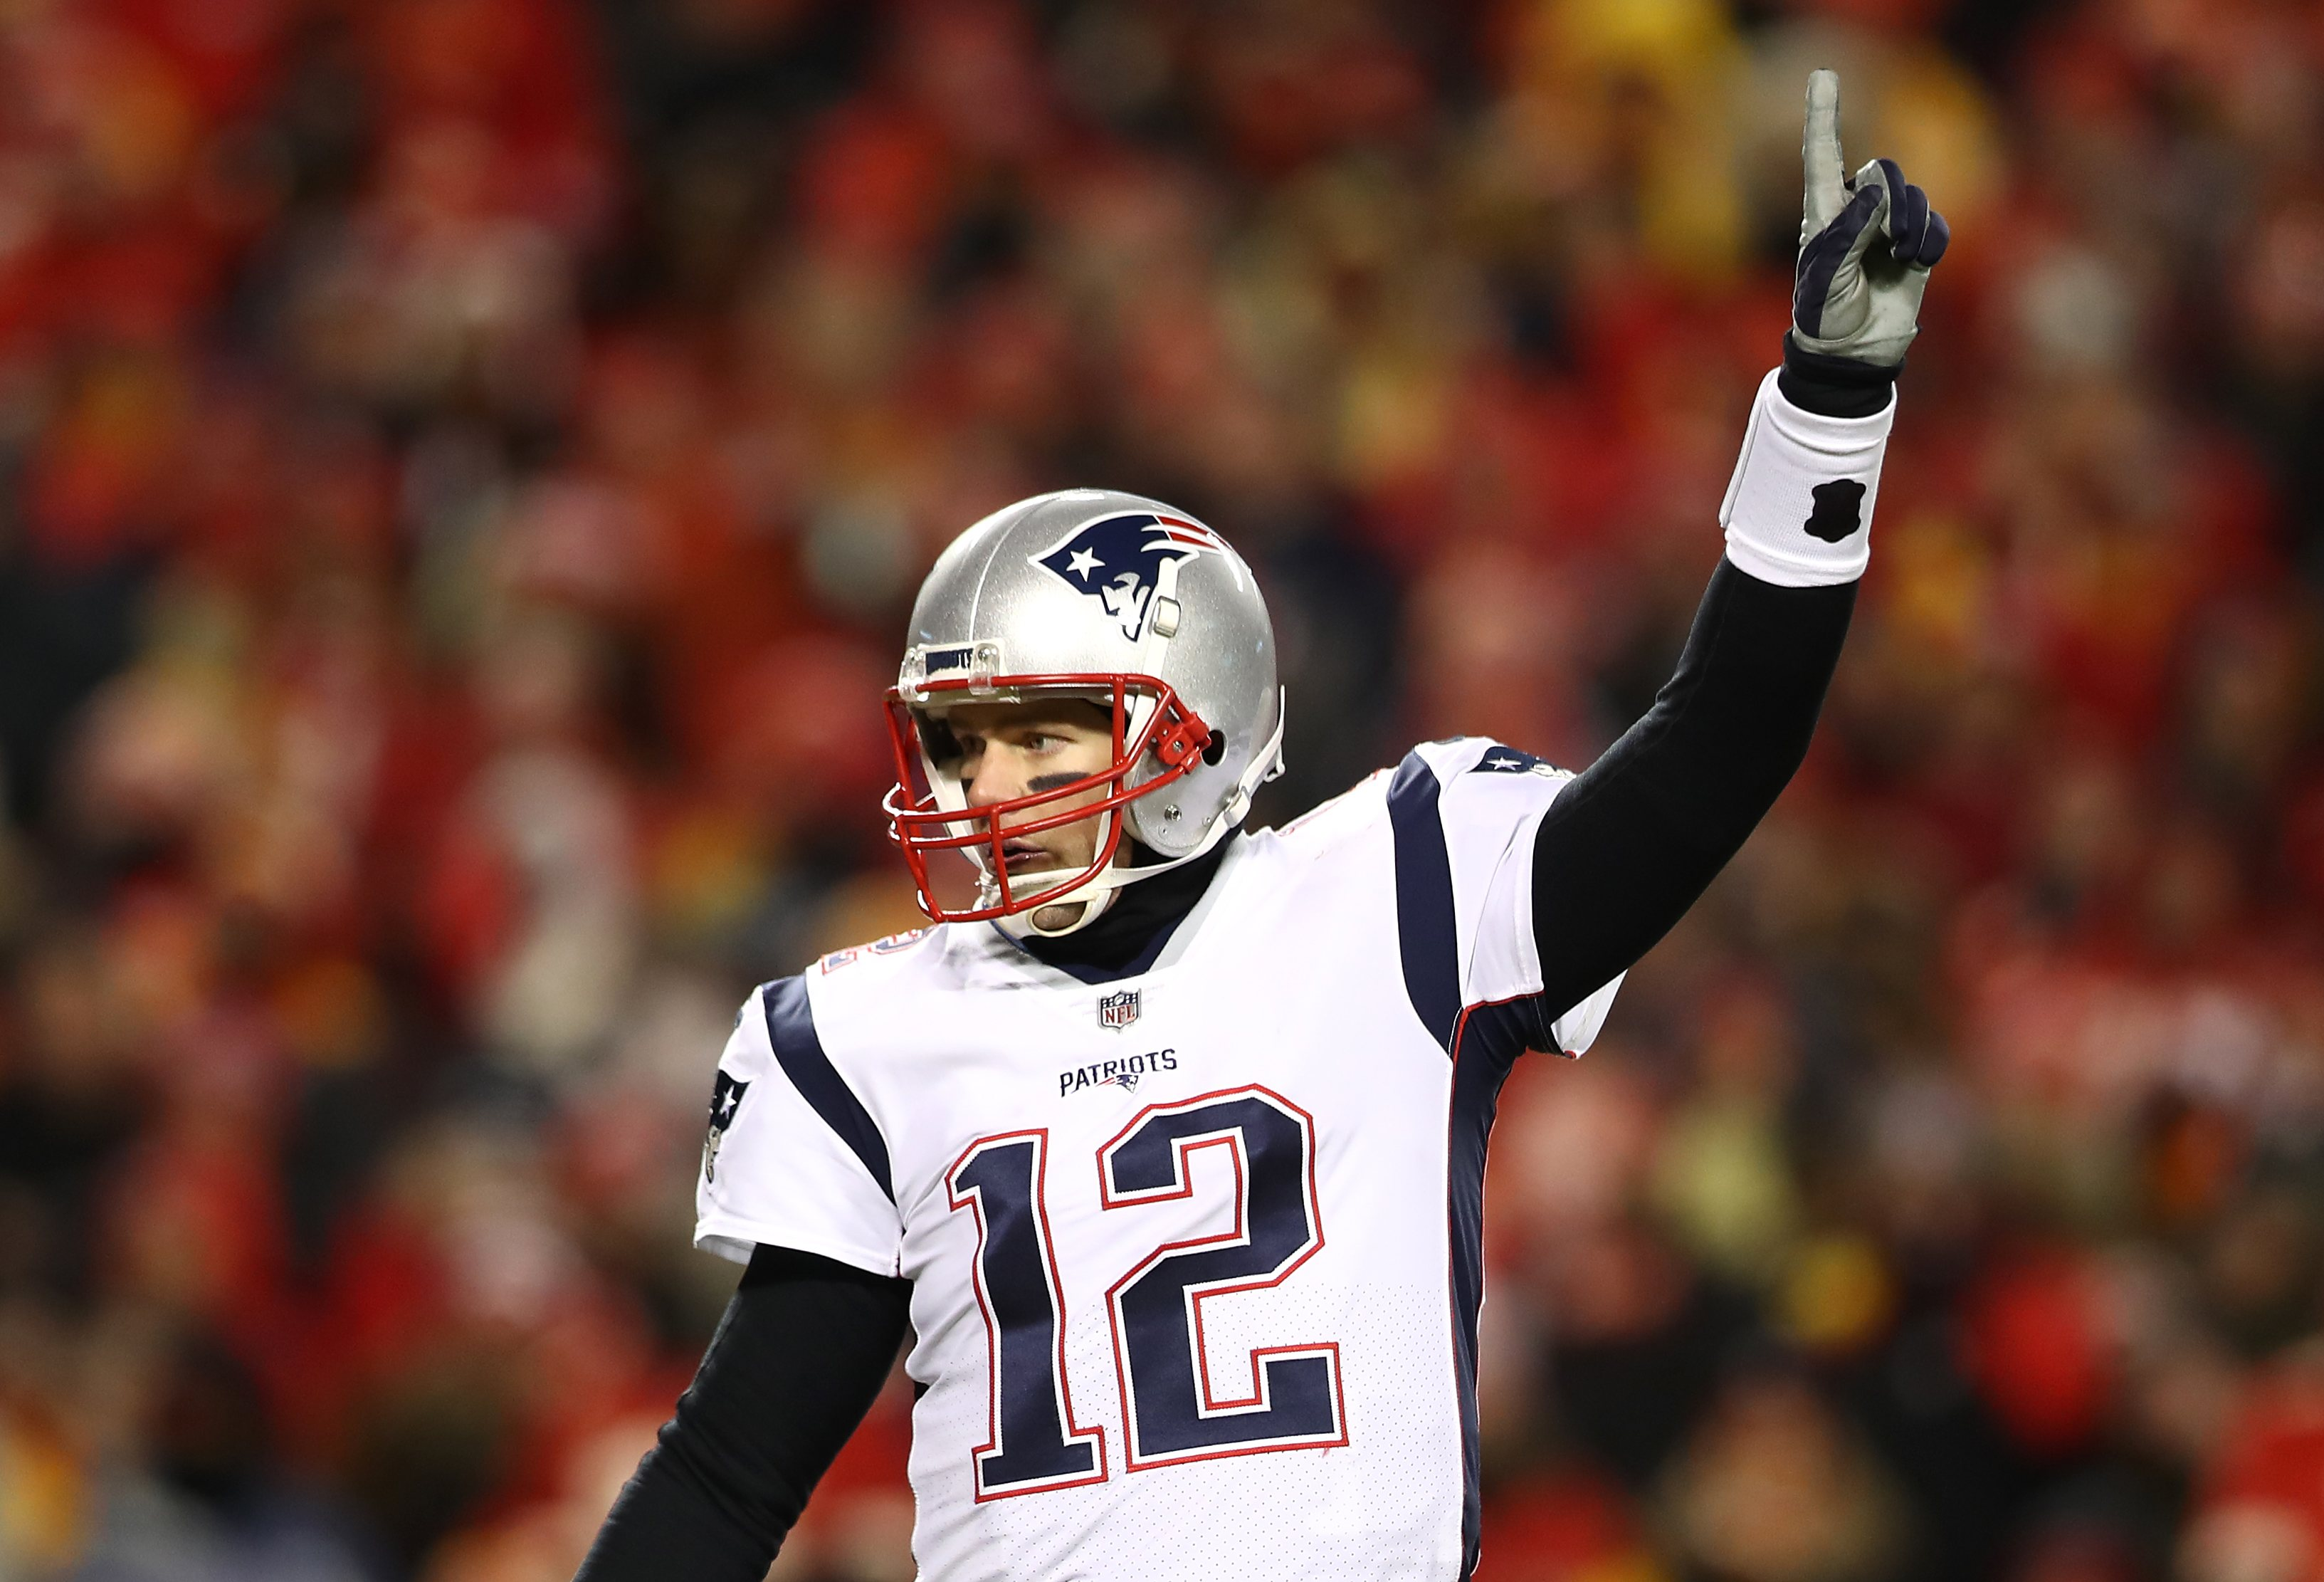 Super Bowl Review: Patriots Champs Again